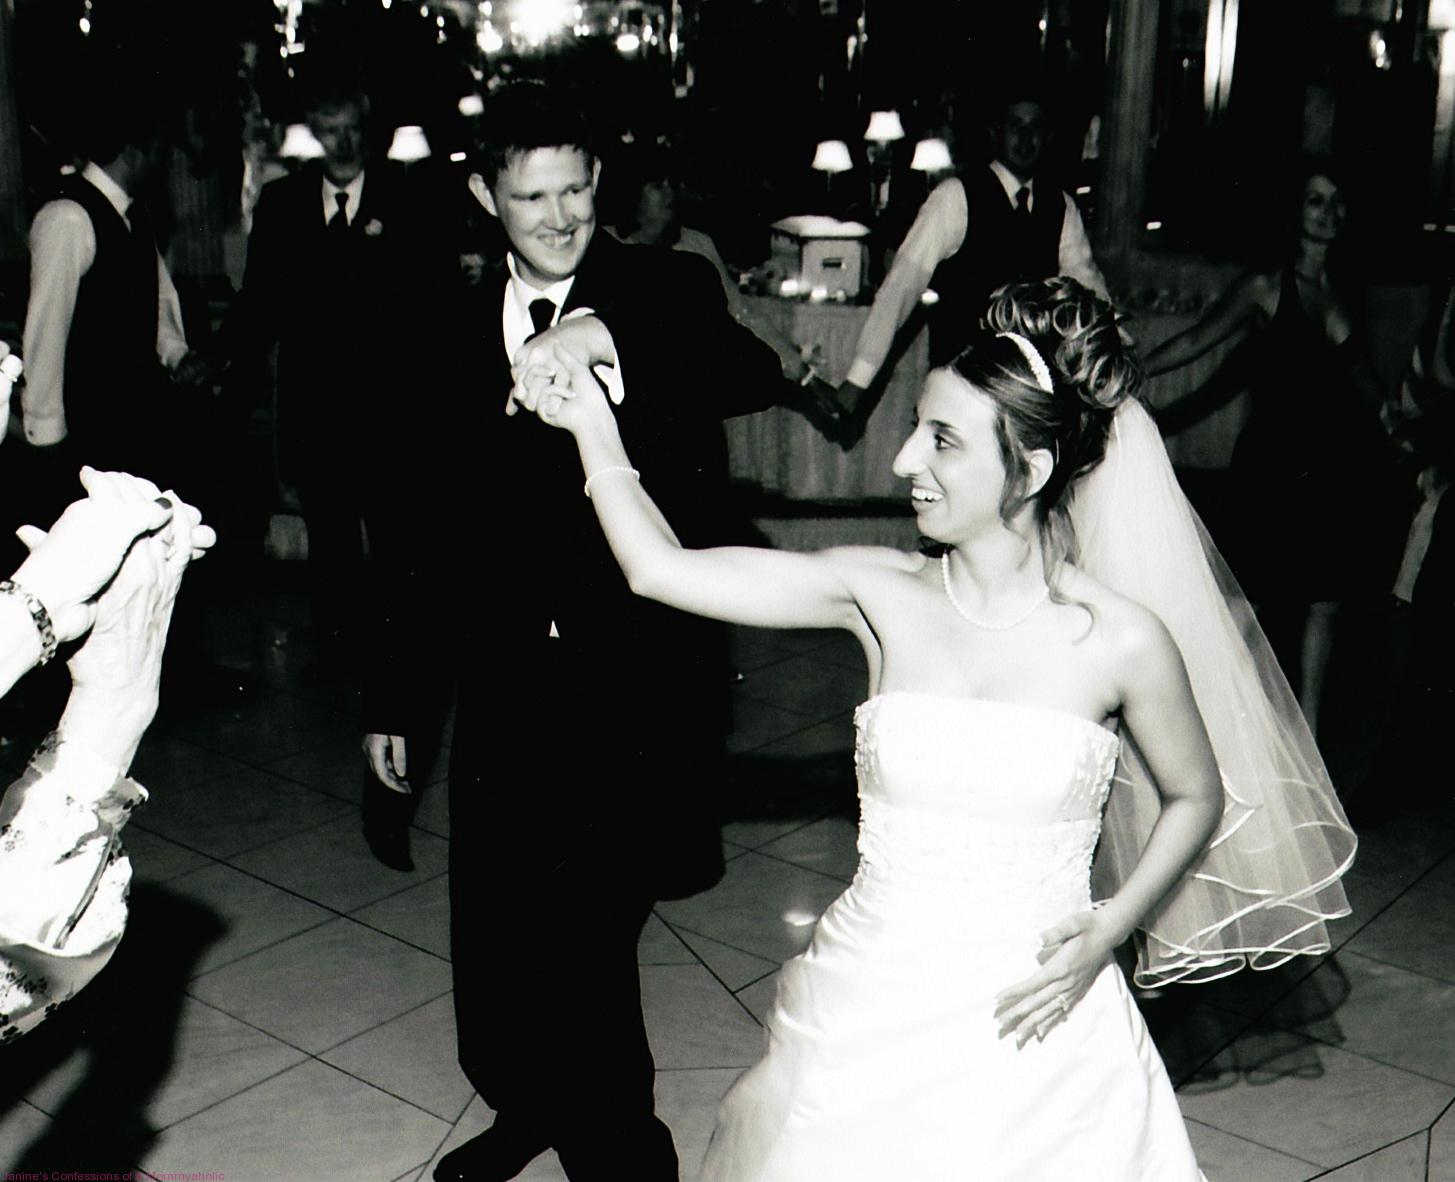 Dancing Away Happily Ever After!